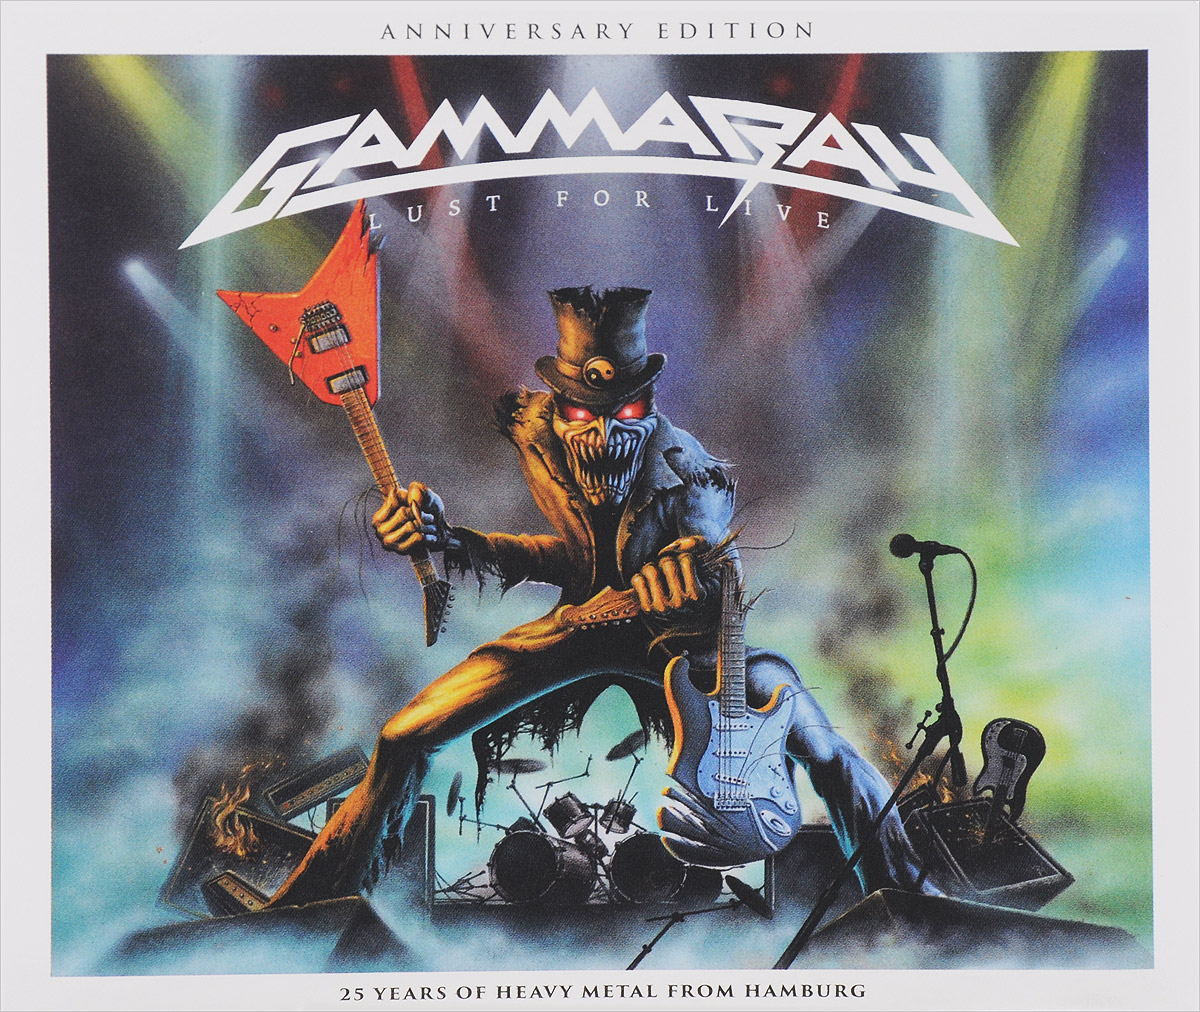 Gamma Ray Gamma Ray. Lust For Live. Anniversary Edition gamma ray gamma ray the best of gamma ray 2 cd